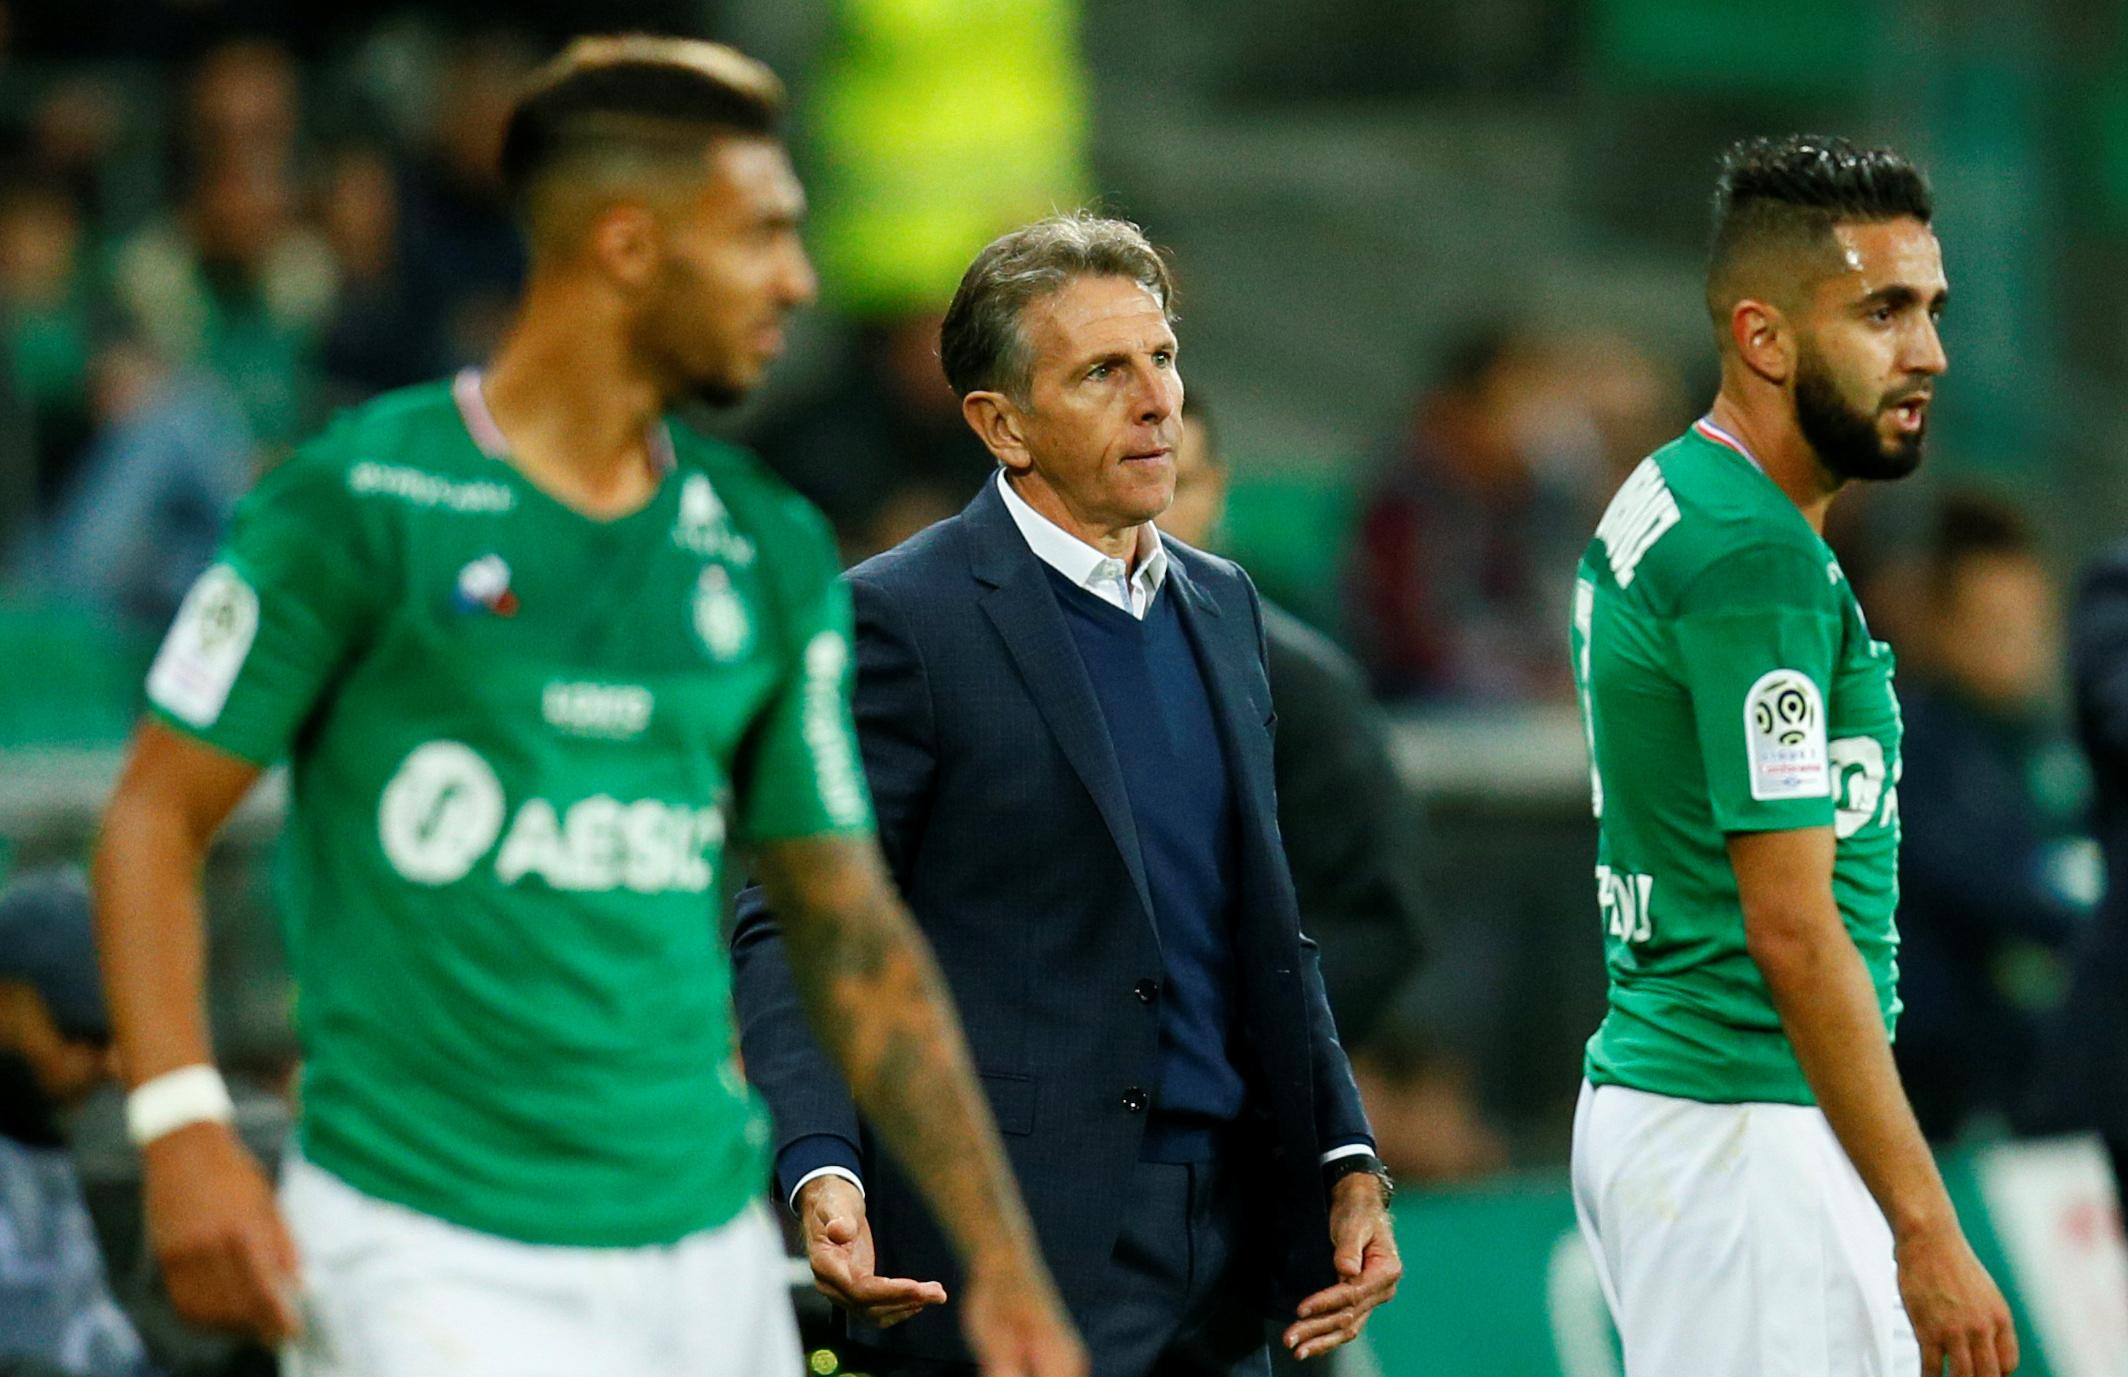 Claude Puel joins St Étienne and immediately turns up heat on Lyon